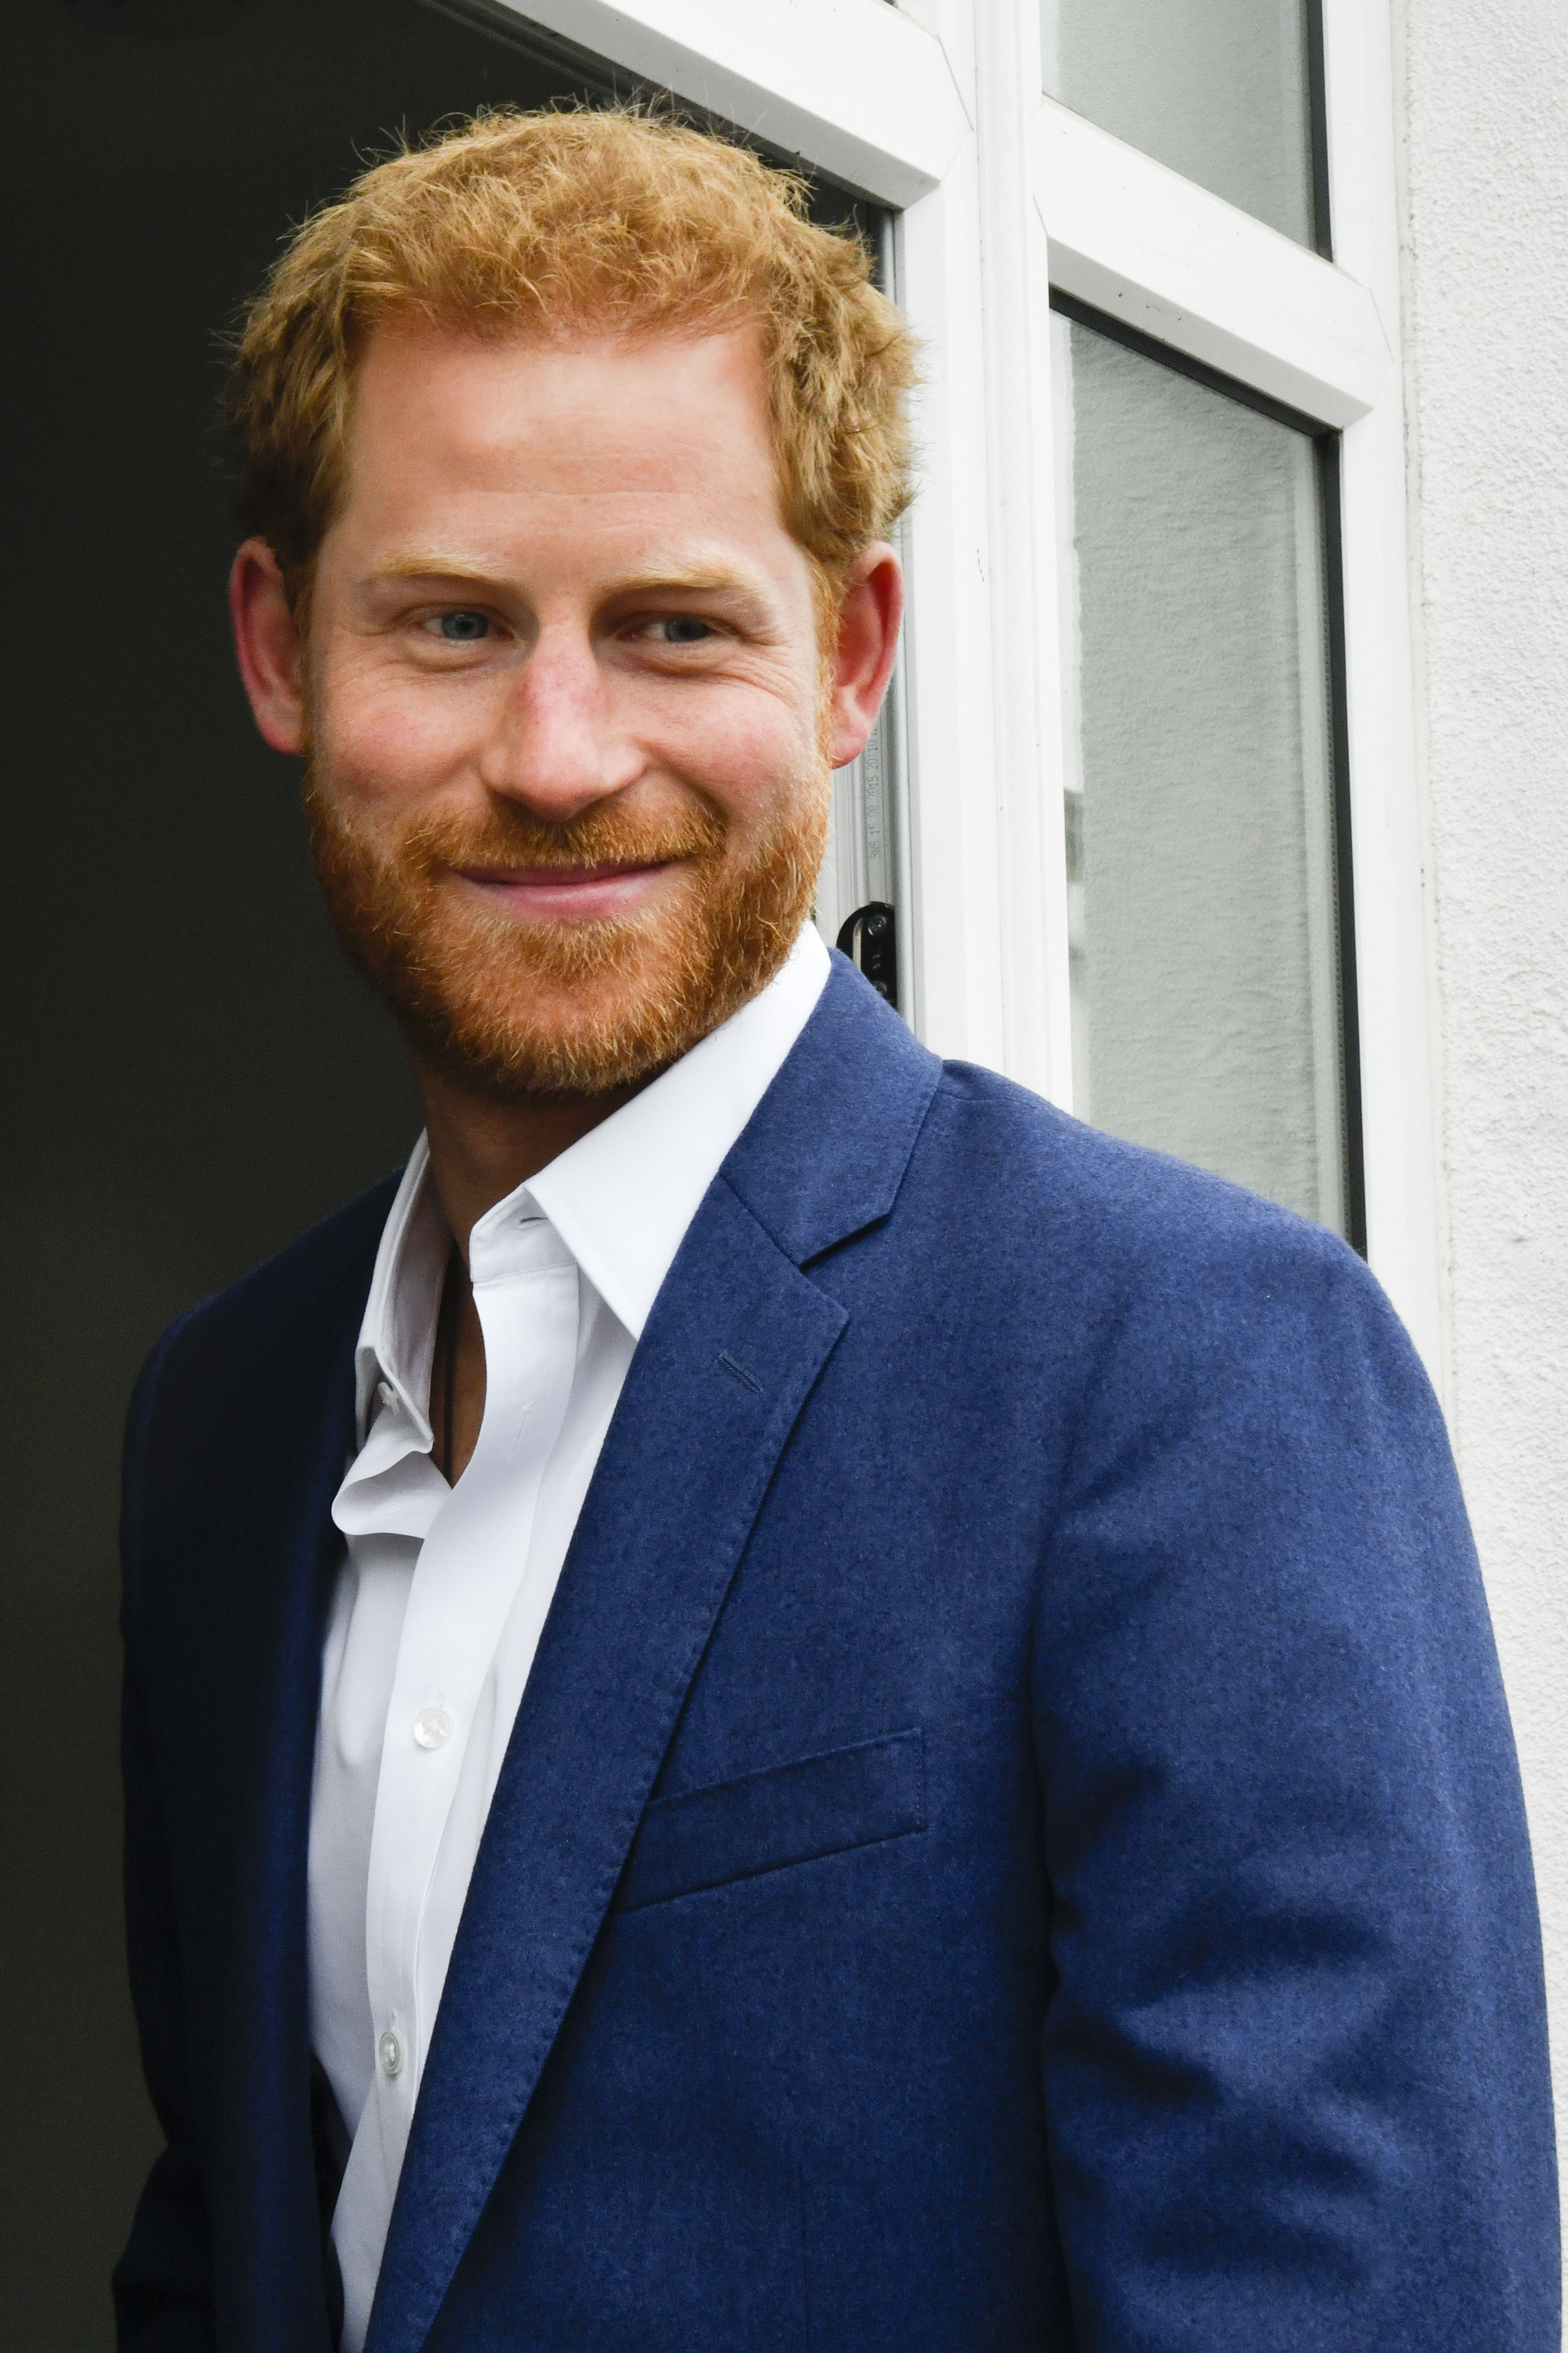 Prince Harry Can't Stop Gushing About His Christmas with Meghan Markle